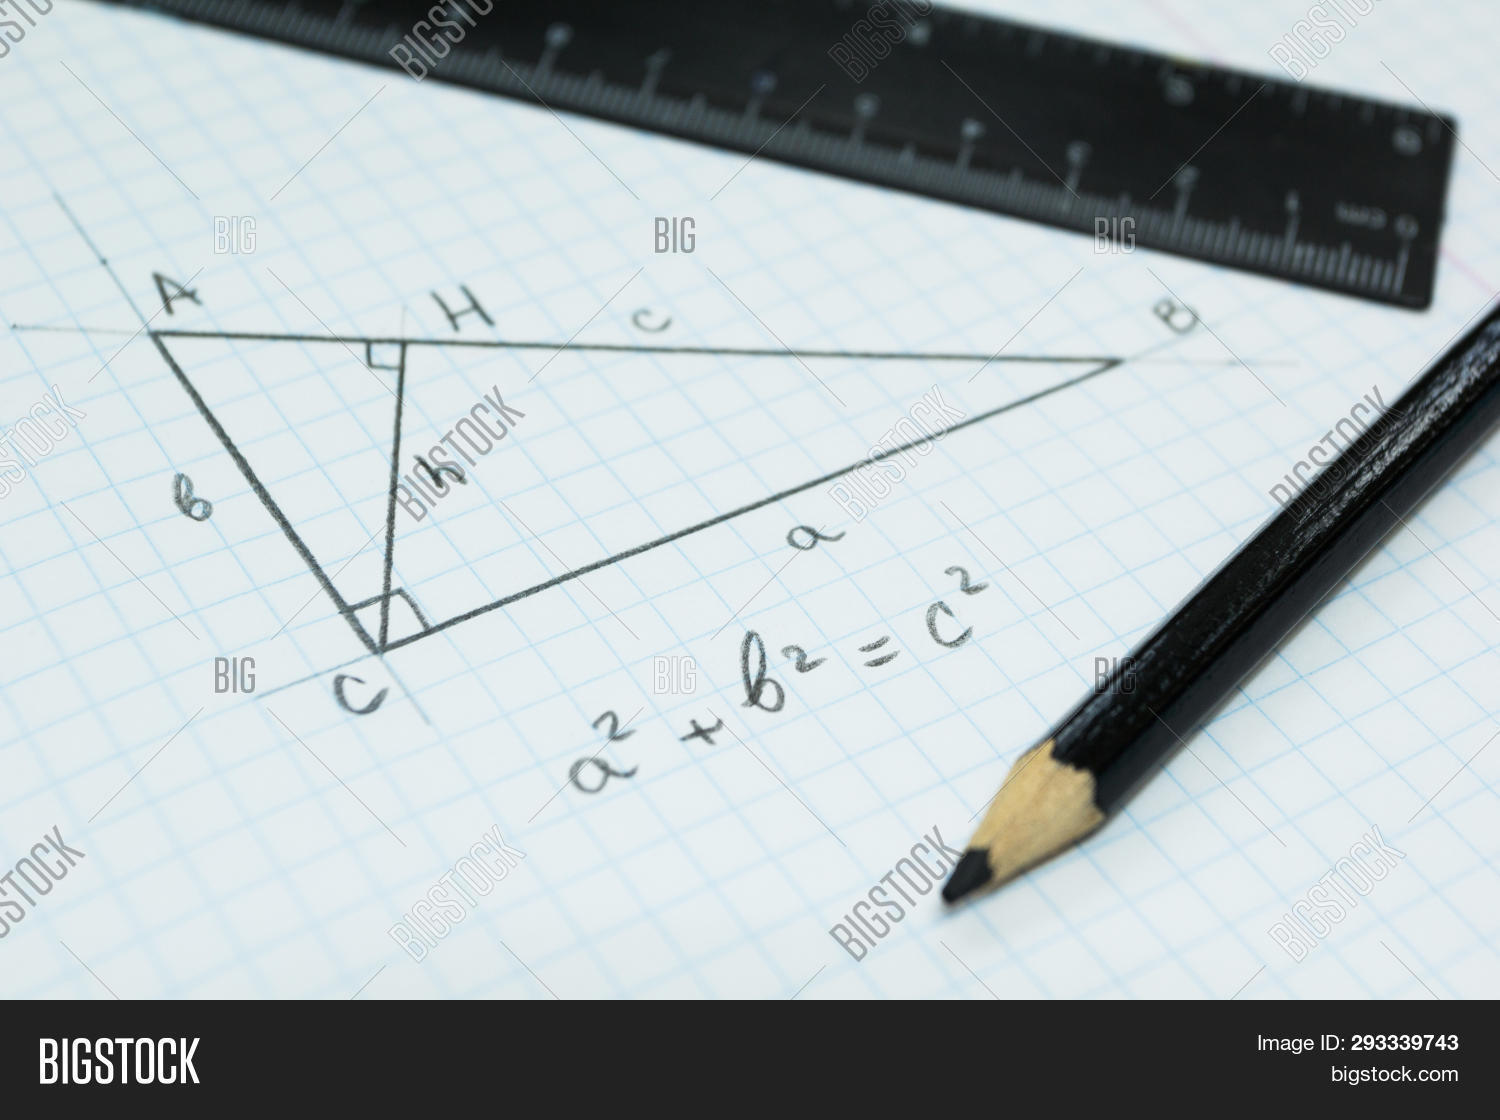 Geometry, The Pythagorean Theorem In A School Notebook.